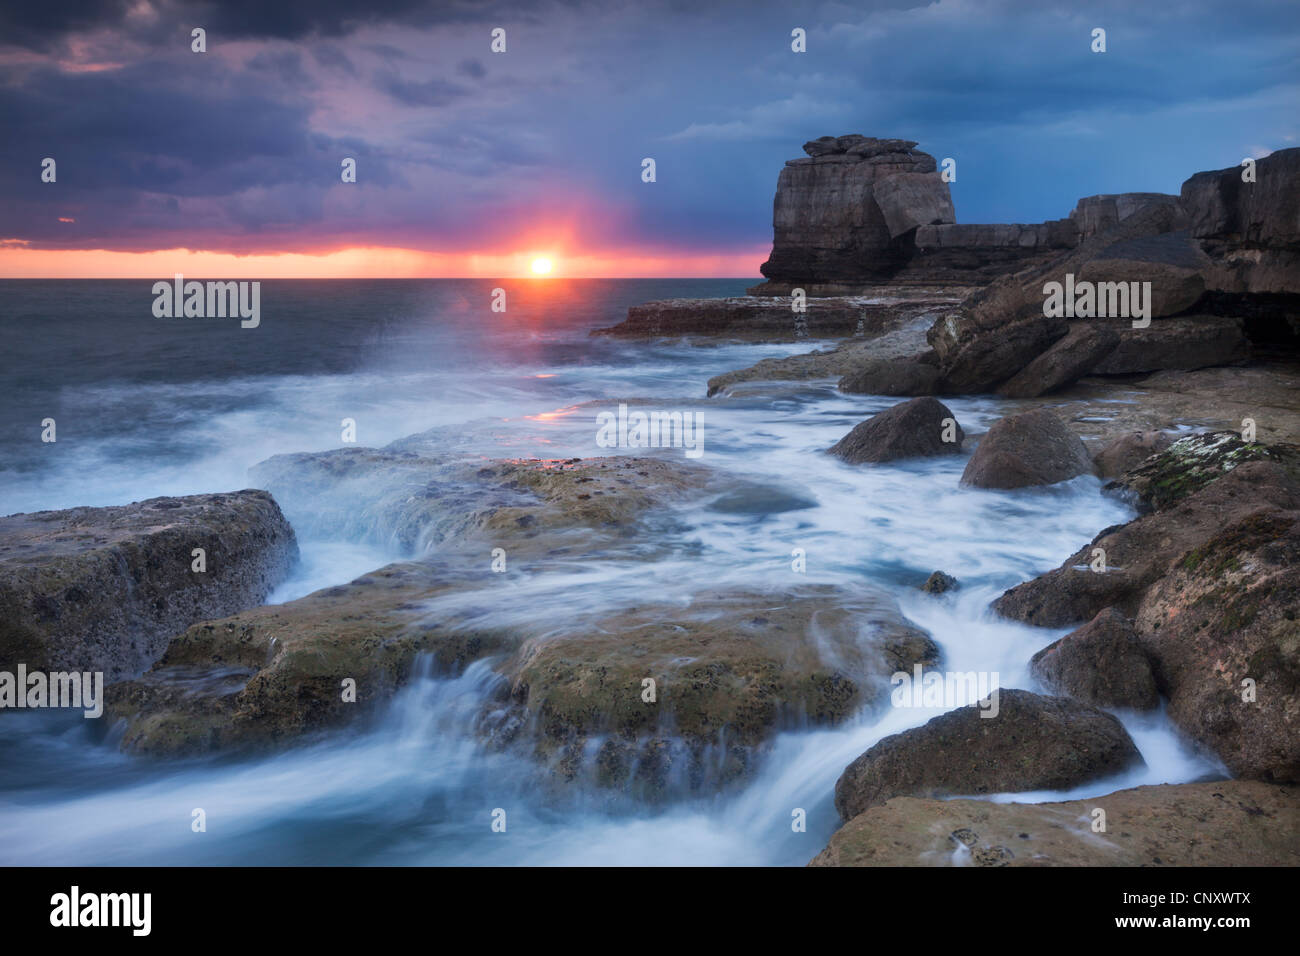 Waves break over the rocky shoreline of Portland Bill, Isle of Portland, Dorset, England. Spring (April) 2012. - Stock Image